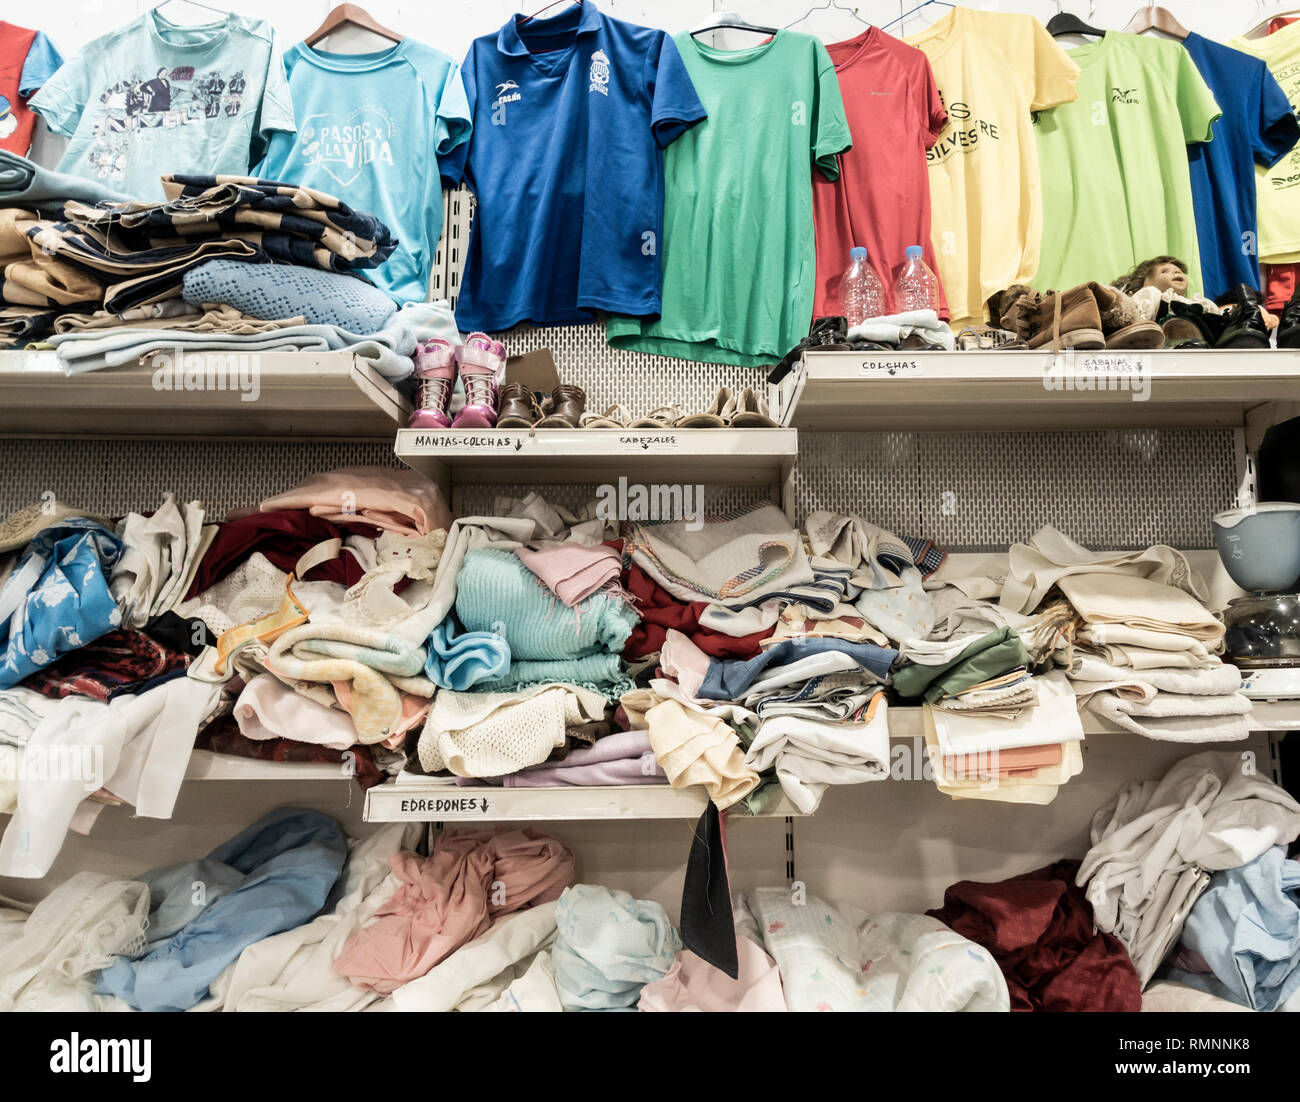 Secondhand clothes in charity shop in Spain - Stock Image